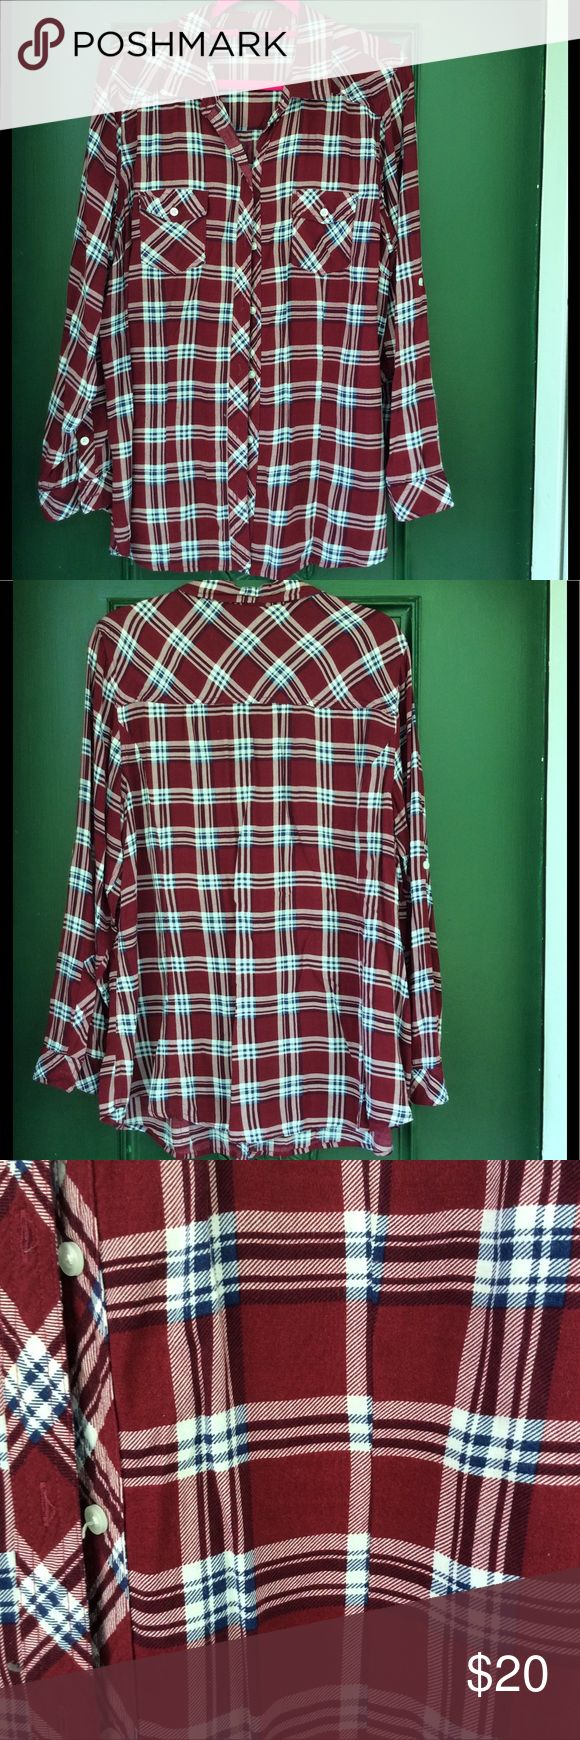 Torrid Deep Red Plaid Shirt This is a light fabric since it is 100% rayon so not heavy like traditional flannel or cotton plaid shirts. Looks great over a white cami. The red is a deep brick red color and there is a dark blue with white striping. This has been gently worn. The sleeves can be pulled up by straps on the outer sides that button up on the outside. No tears no stains. No pets, no smoking and no smoking pets (Sorry I had to go there) torrid Tops Button Down Shirts